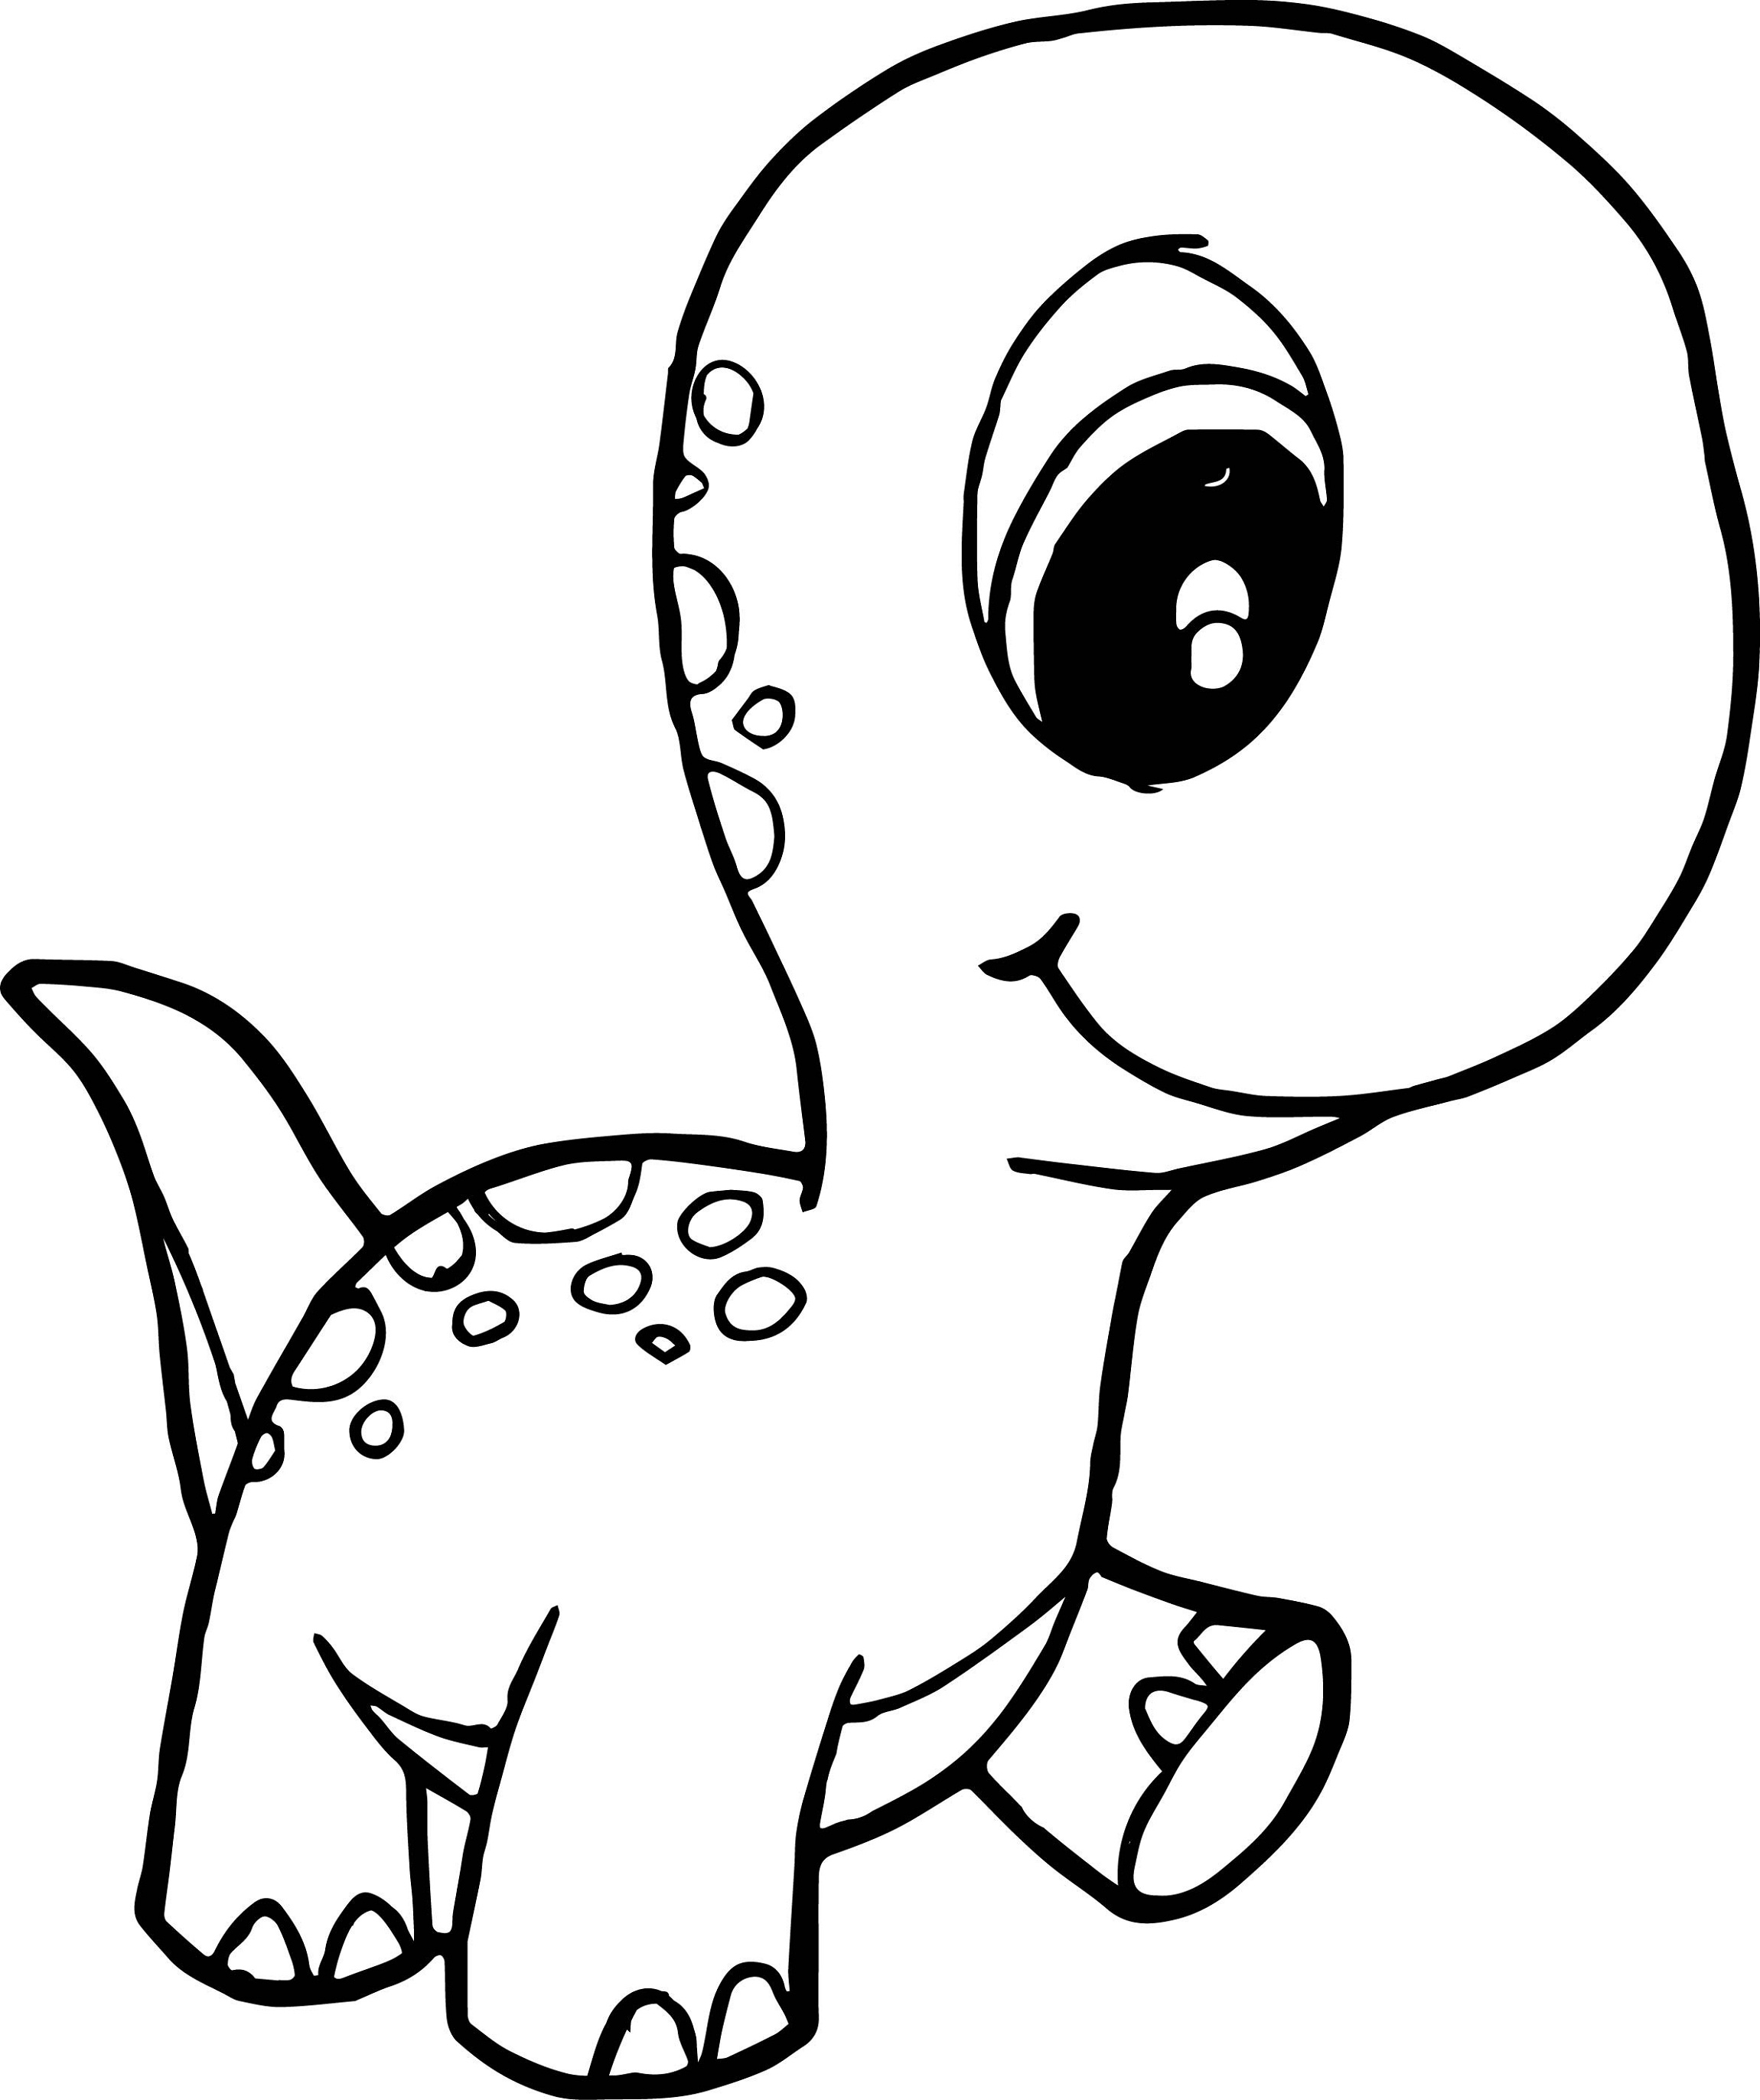 dinosaur print out coloring pages dinosaur coloring pages 8 coloring kids print dinosaur coloring out pages